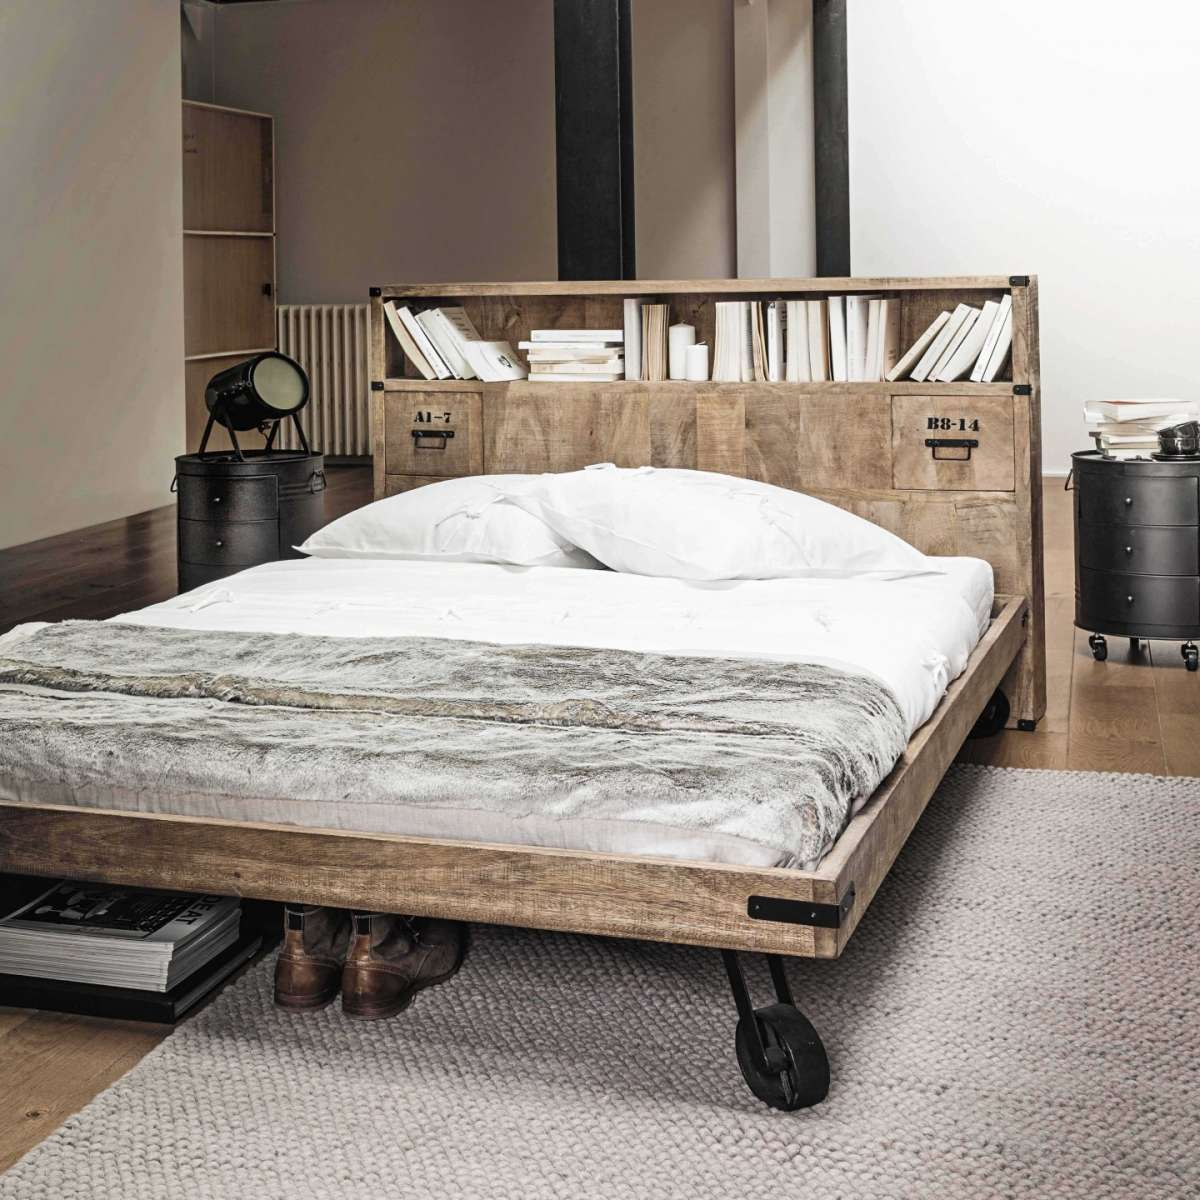 Testiere letto originali foto 15 40 design mag for Bourse maison du monde